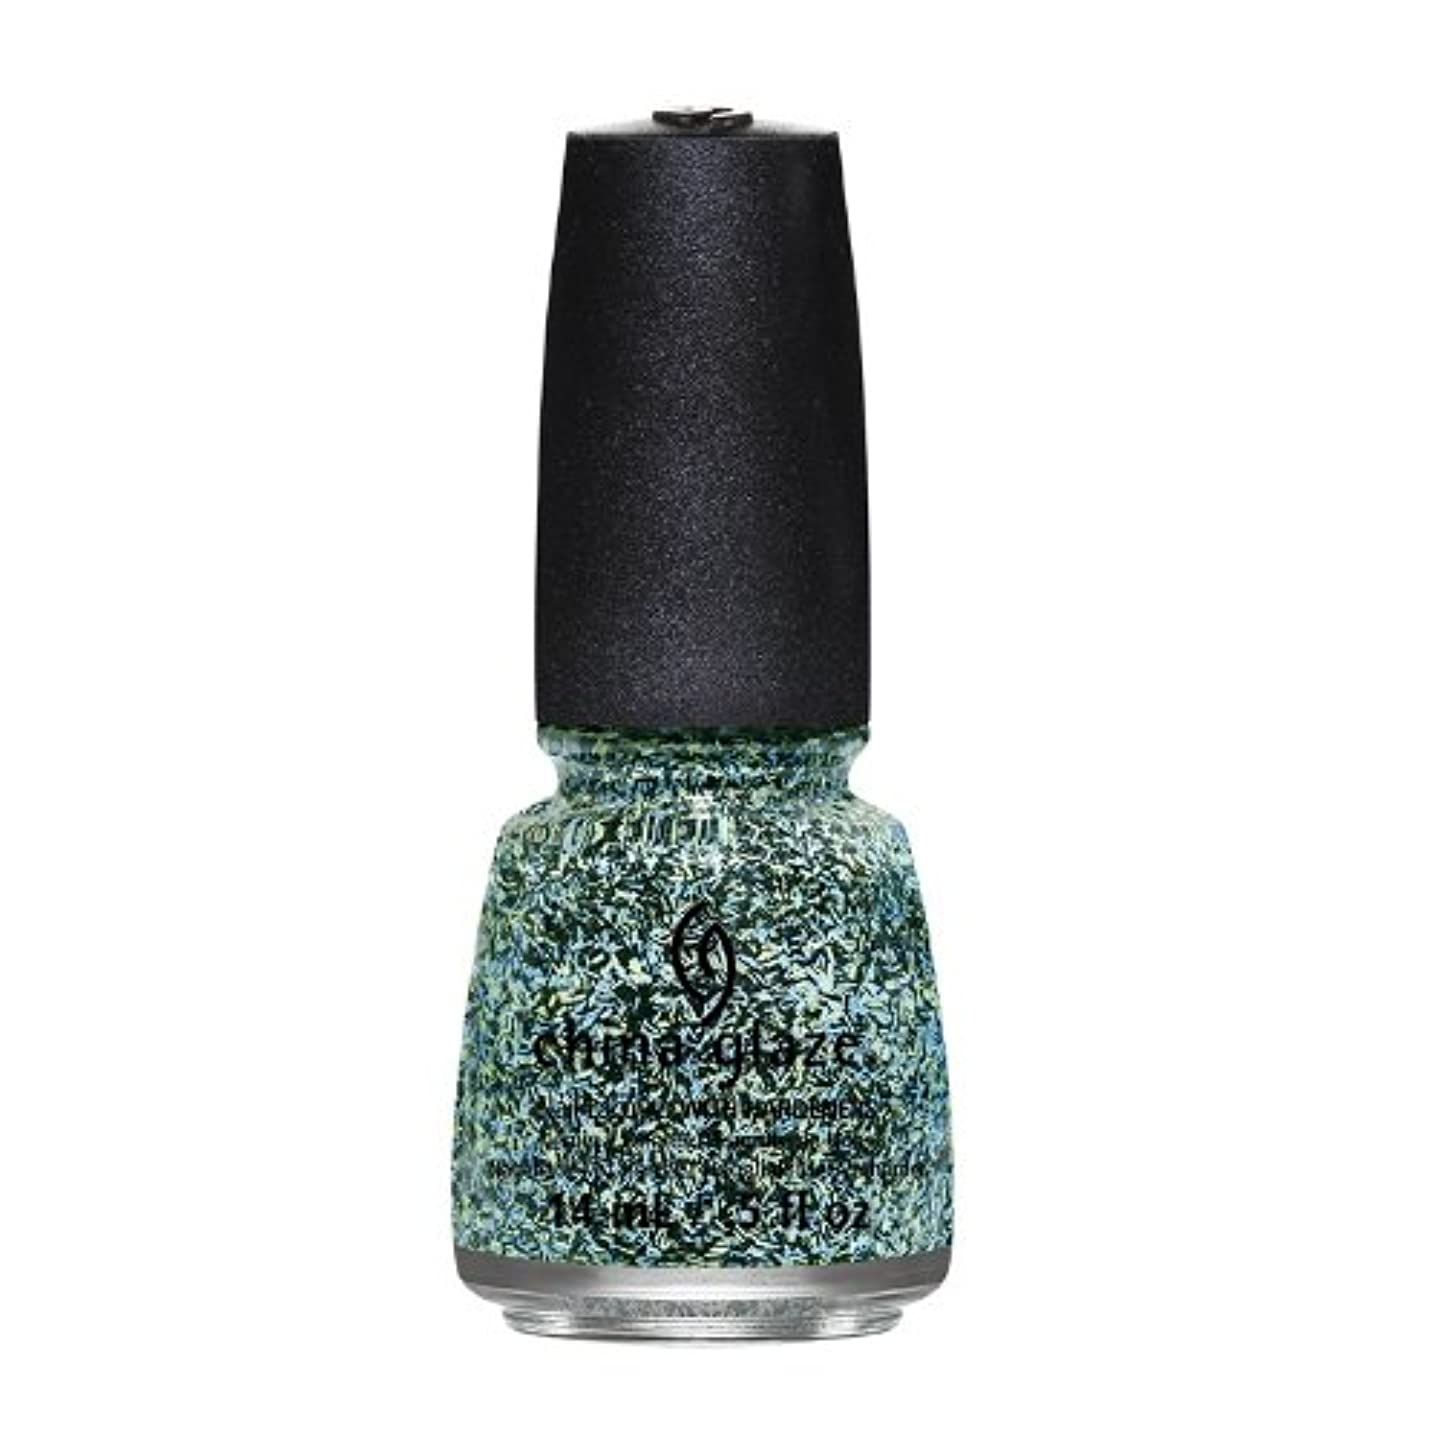 ハンディキャップ返済悲惨な(3 Pack) CHINA GLAZE On The Horizon - Feathered Finish - Flock Together (並行輸入品)